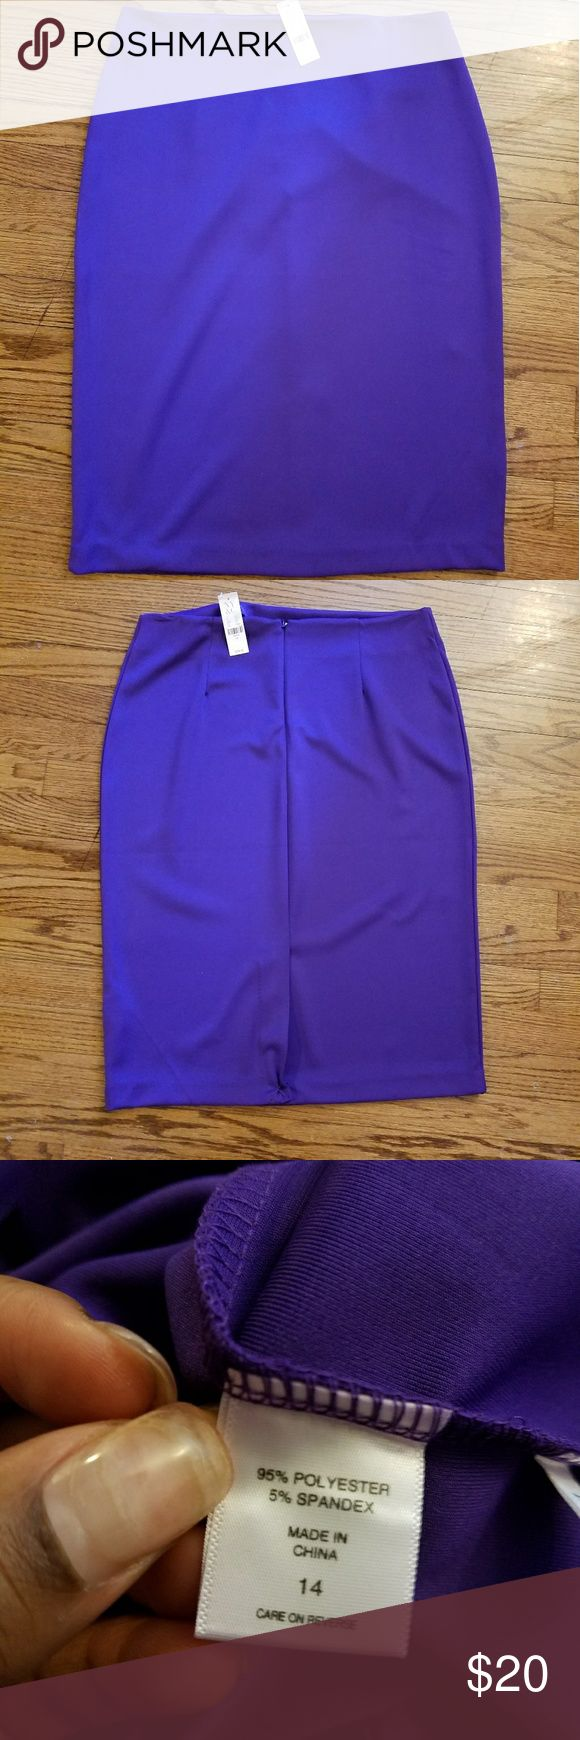 Purple Pencil Skirt Chic pencil skirt; the pull-on design adds a sense of ease.  OVERVIEW  Pull-on style.Back zipper with clasp.  FIT & SIZING  Pencil silhouette.Sits at waist.Center back length: 27 inches.  FABRIC & CARE  Shell: 95% Polyester, 5% Spandex.Lining: 100% PolyesterMachine Wash.Imported. New York & Company Skirts Pencil